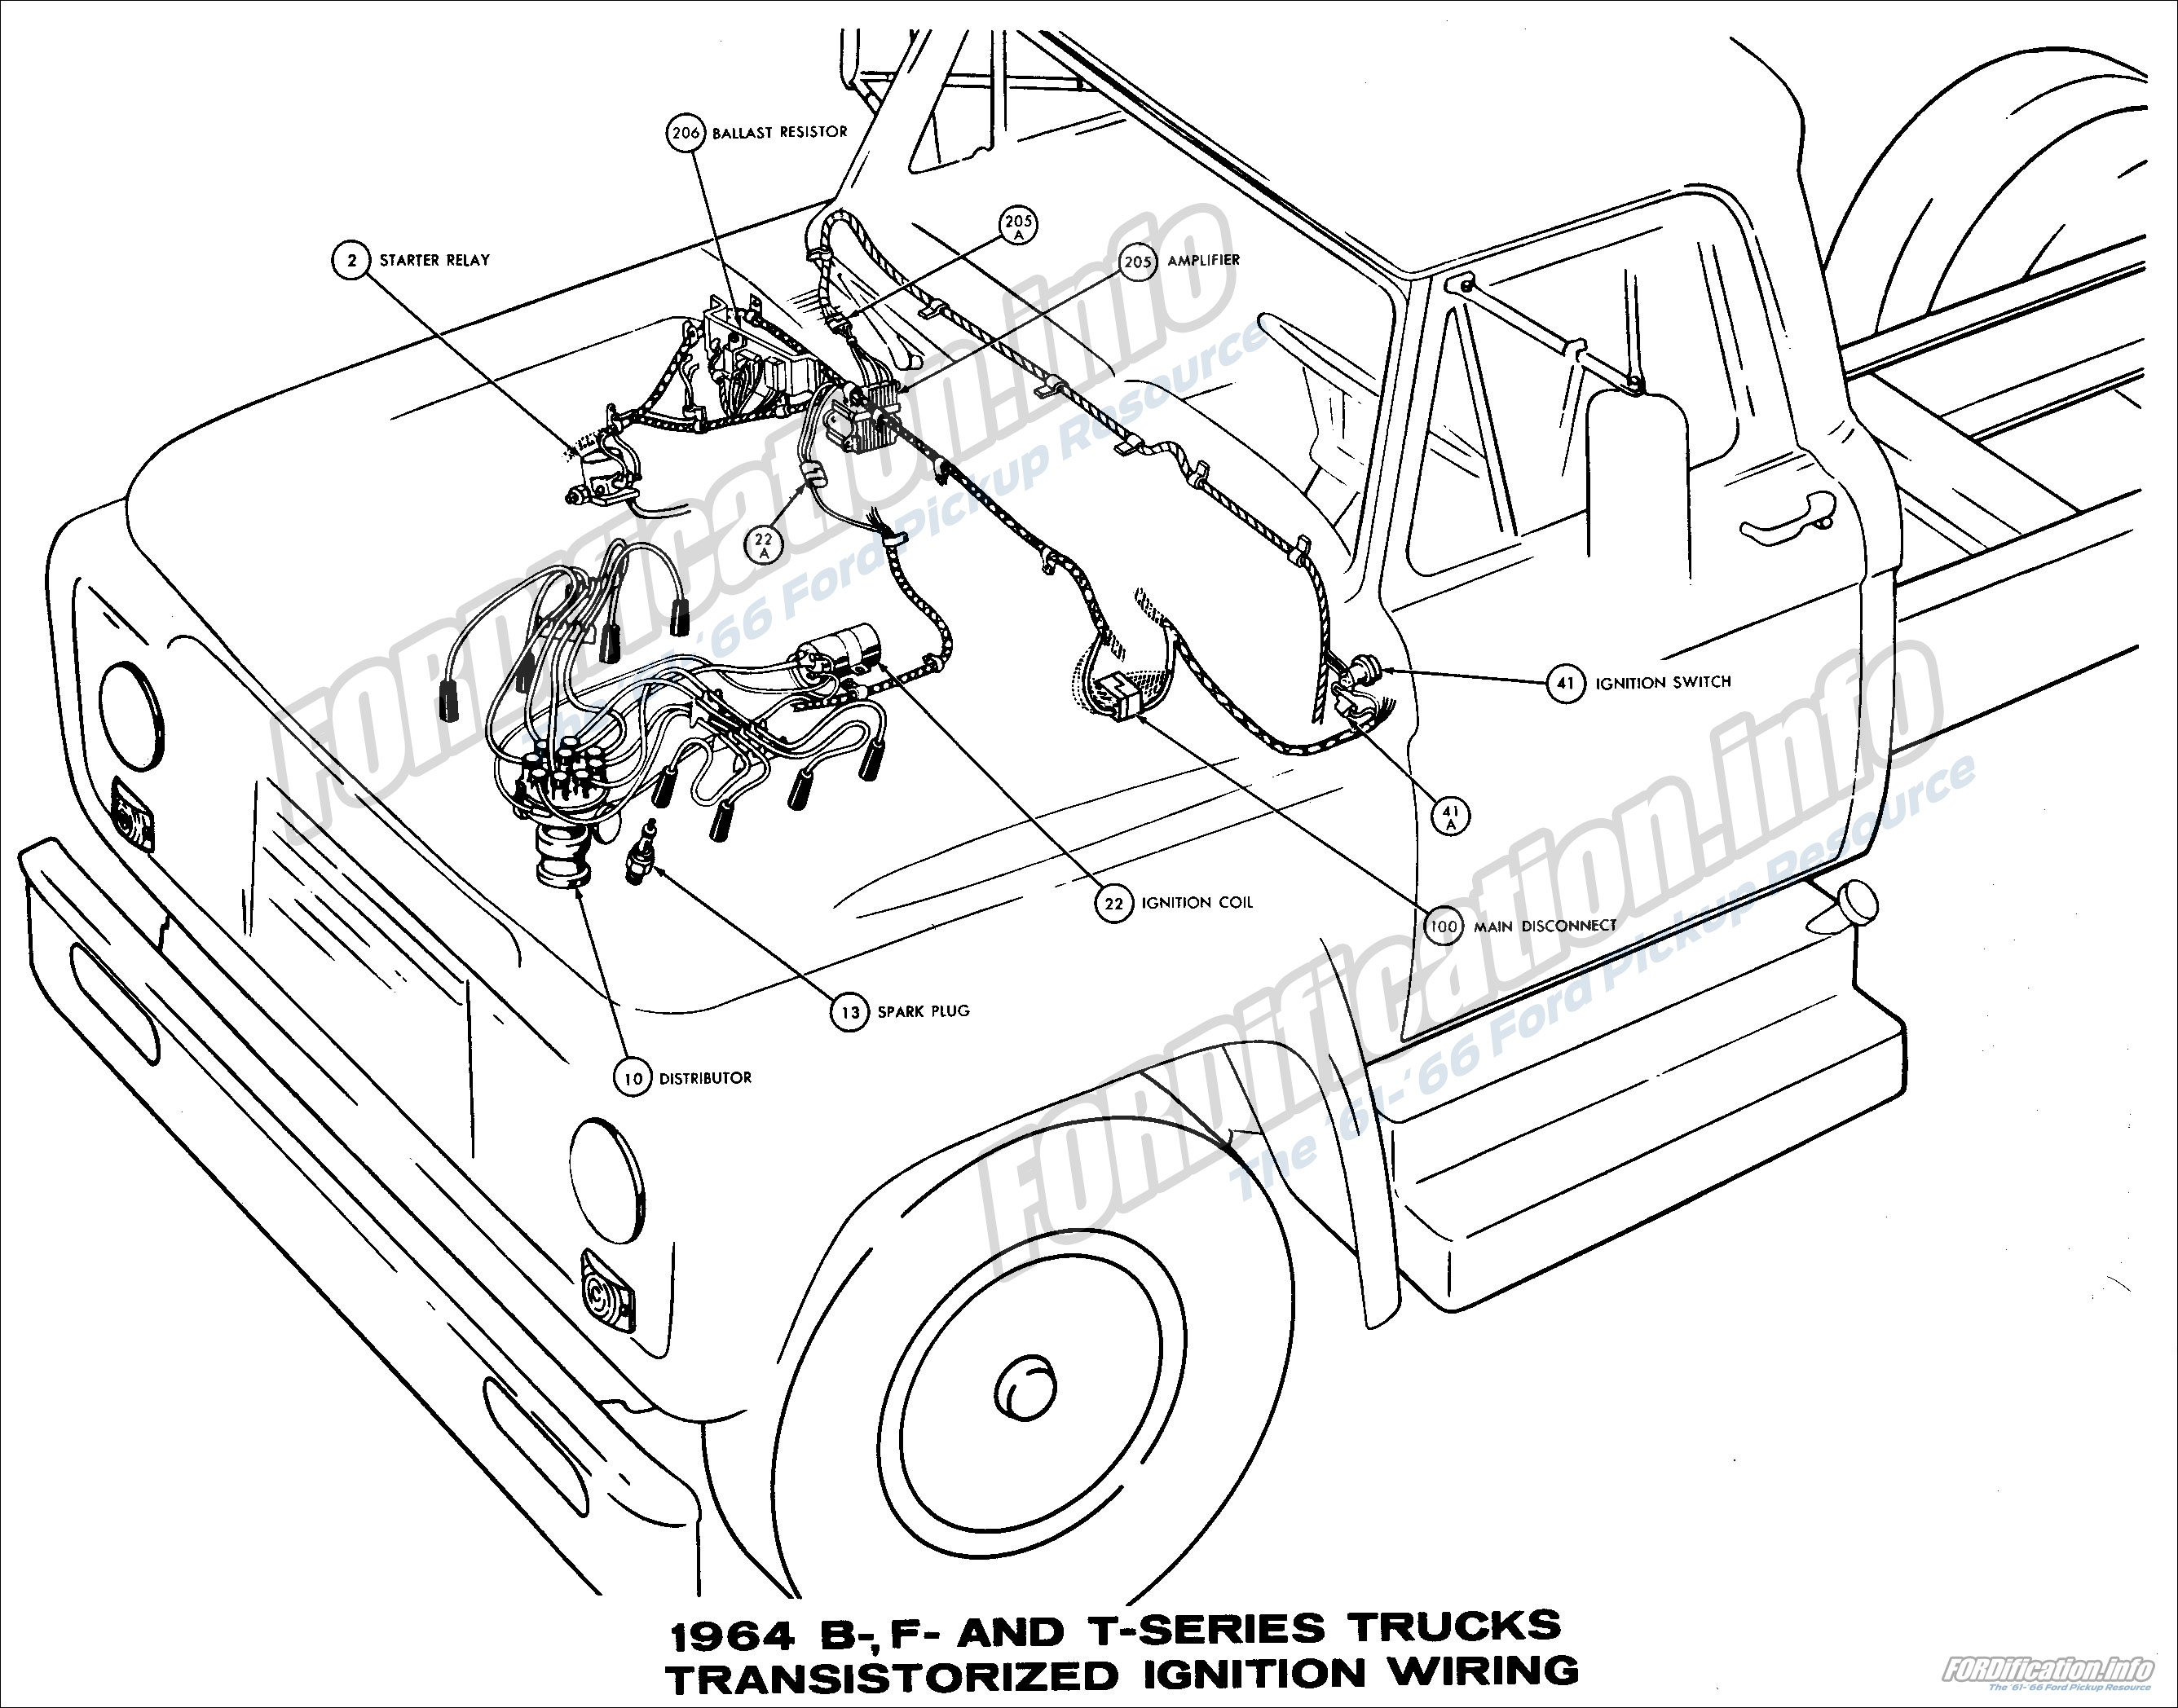 Ford Truck Drawing At Free For Personal Use Wiring Diagram 2672x2096 1964 Diagrams